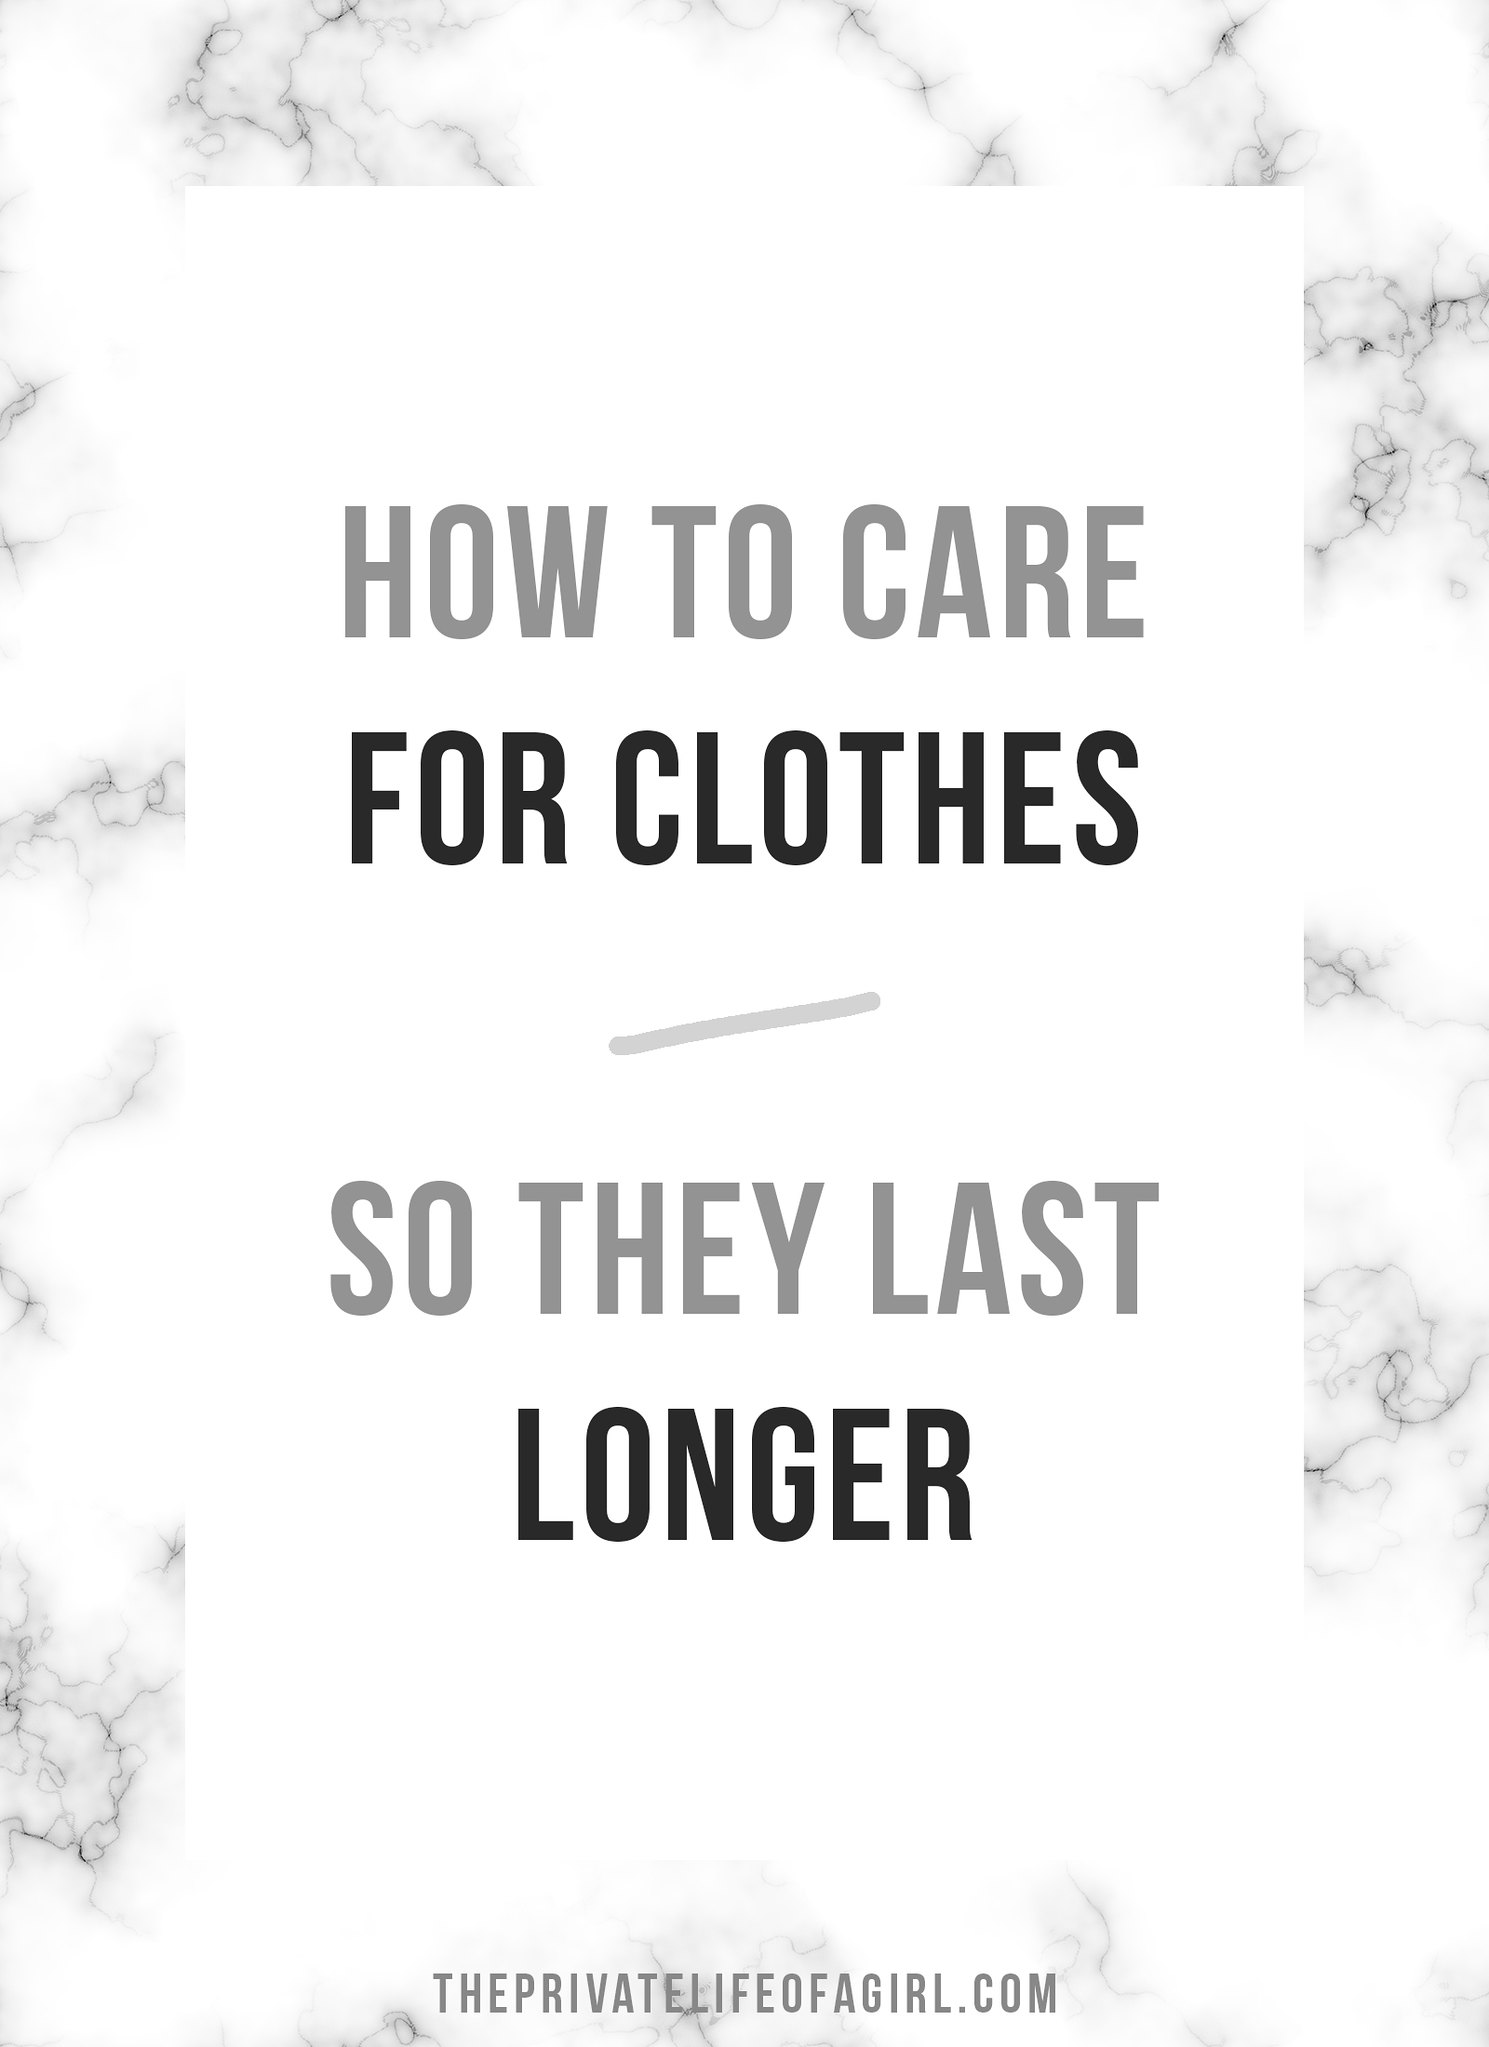 Caring For Clothes So They Last Longer